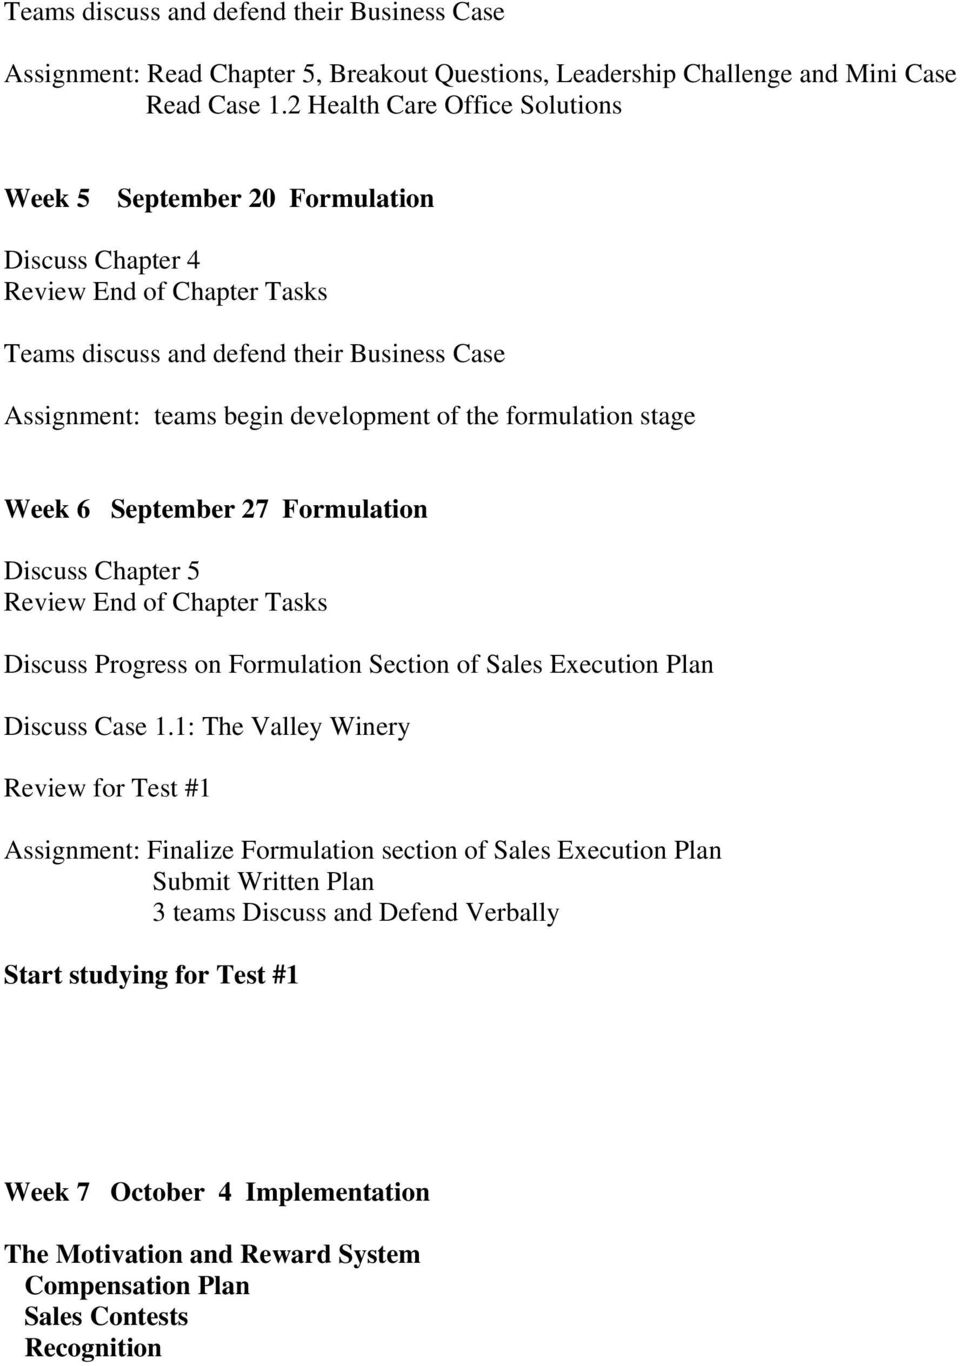 formulation stage Week 6 September 27 Formulation Discuss Chapter 5 Review End of Chapter Tasks Discuss Progress on Formulation Section of Sales Execution Plan Discuss Case 1.